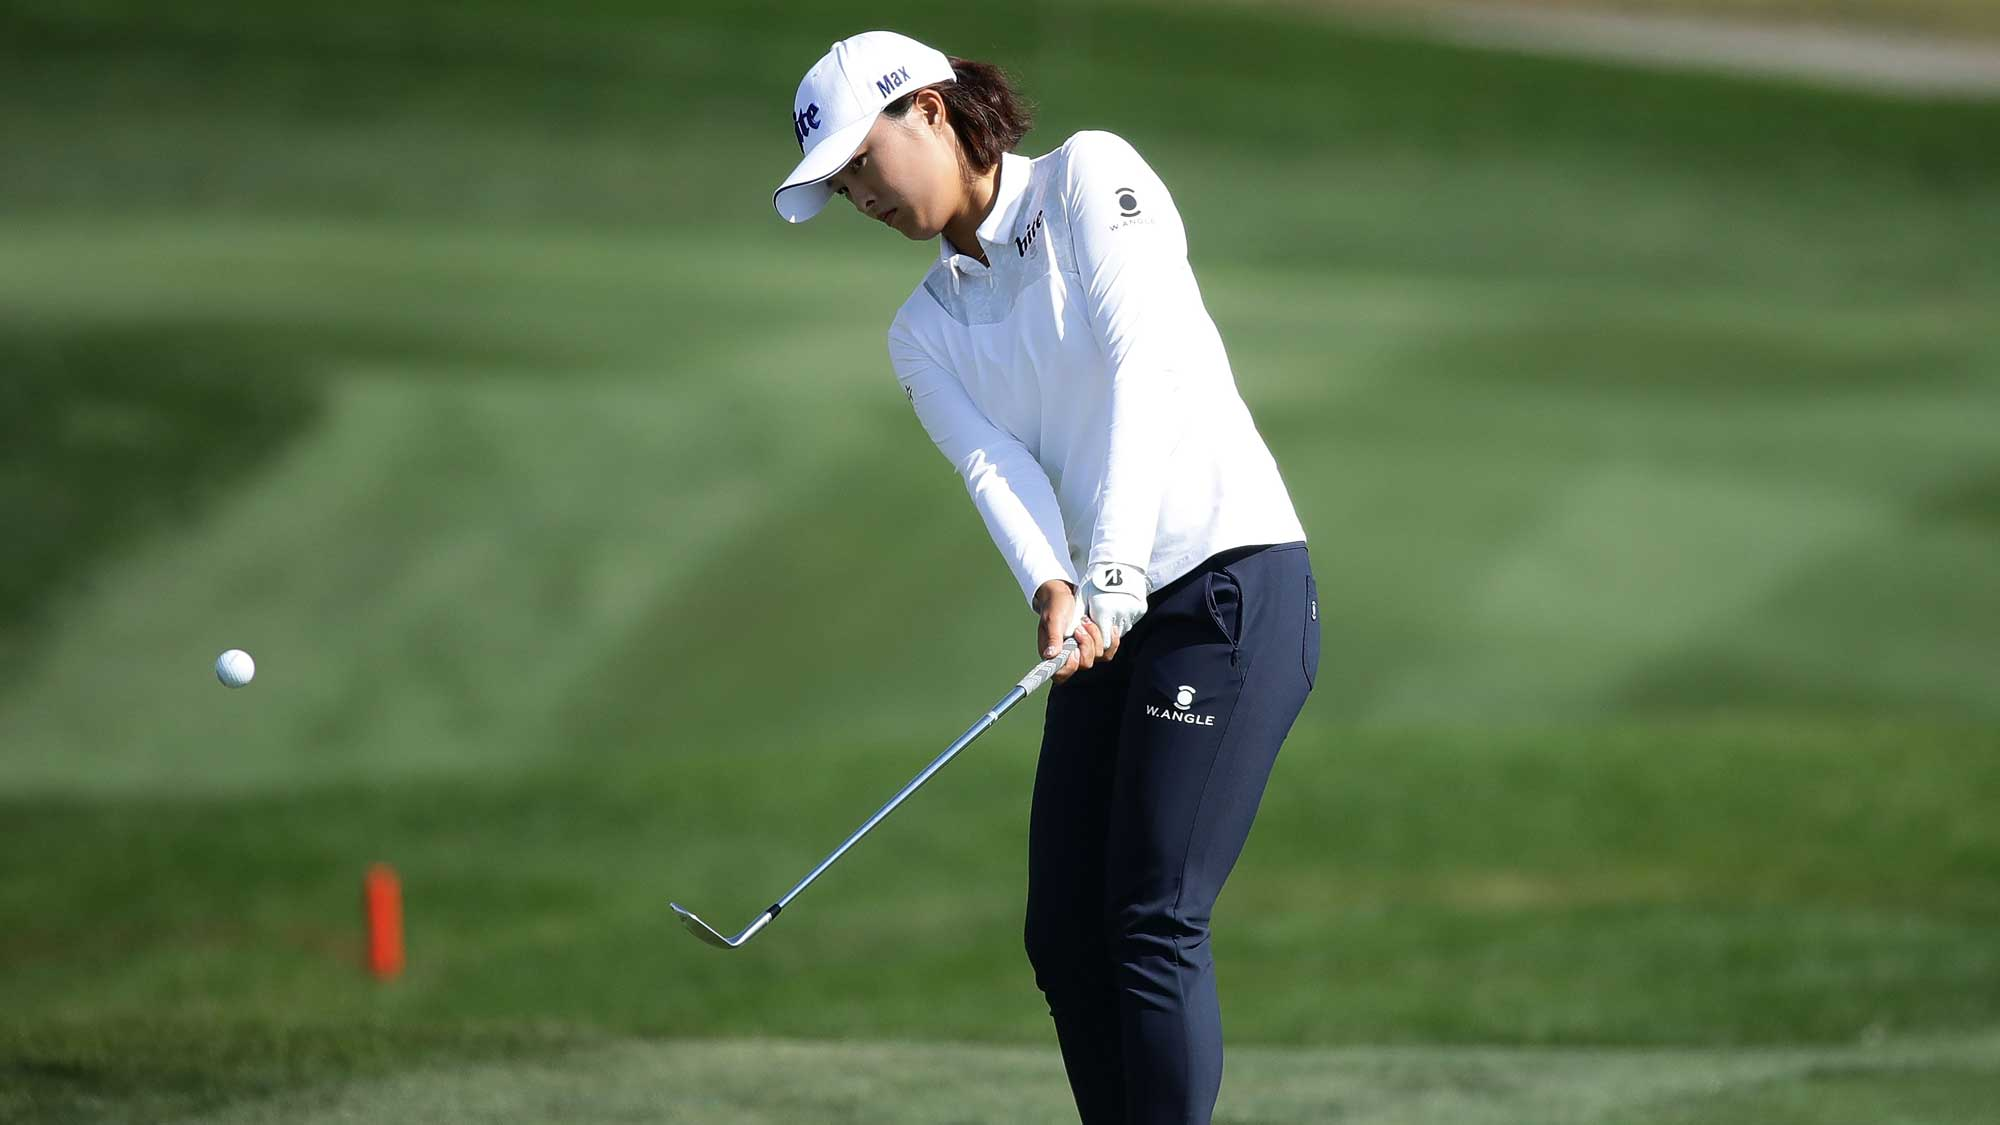 Jin-Young Ko of South Korea plays a shot on the 6th hole during the final round of the LPGA KEB Hana Bank Championship